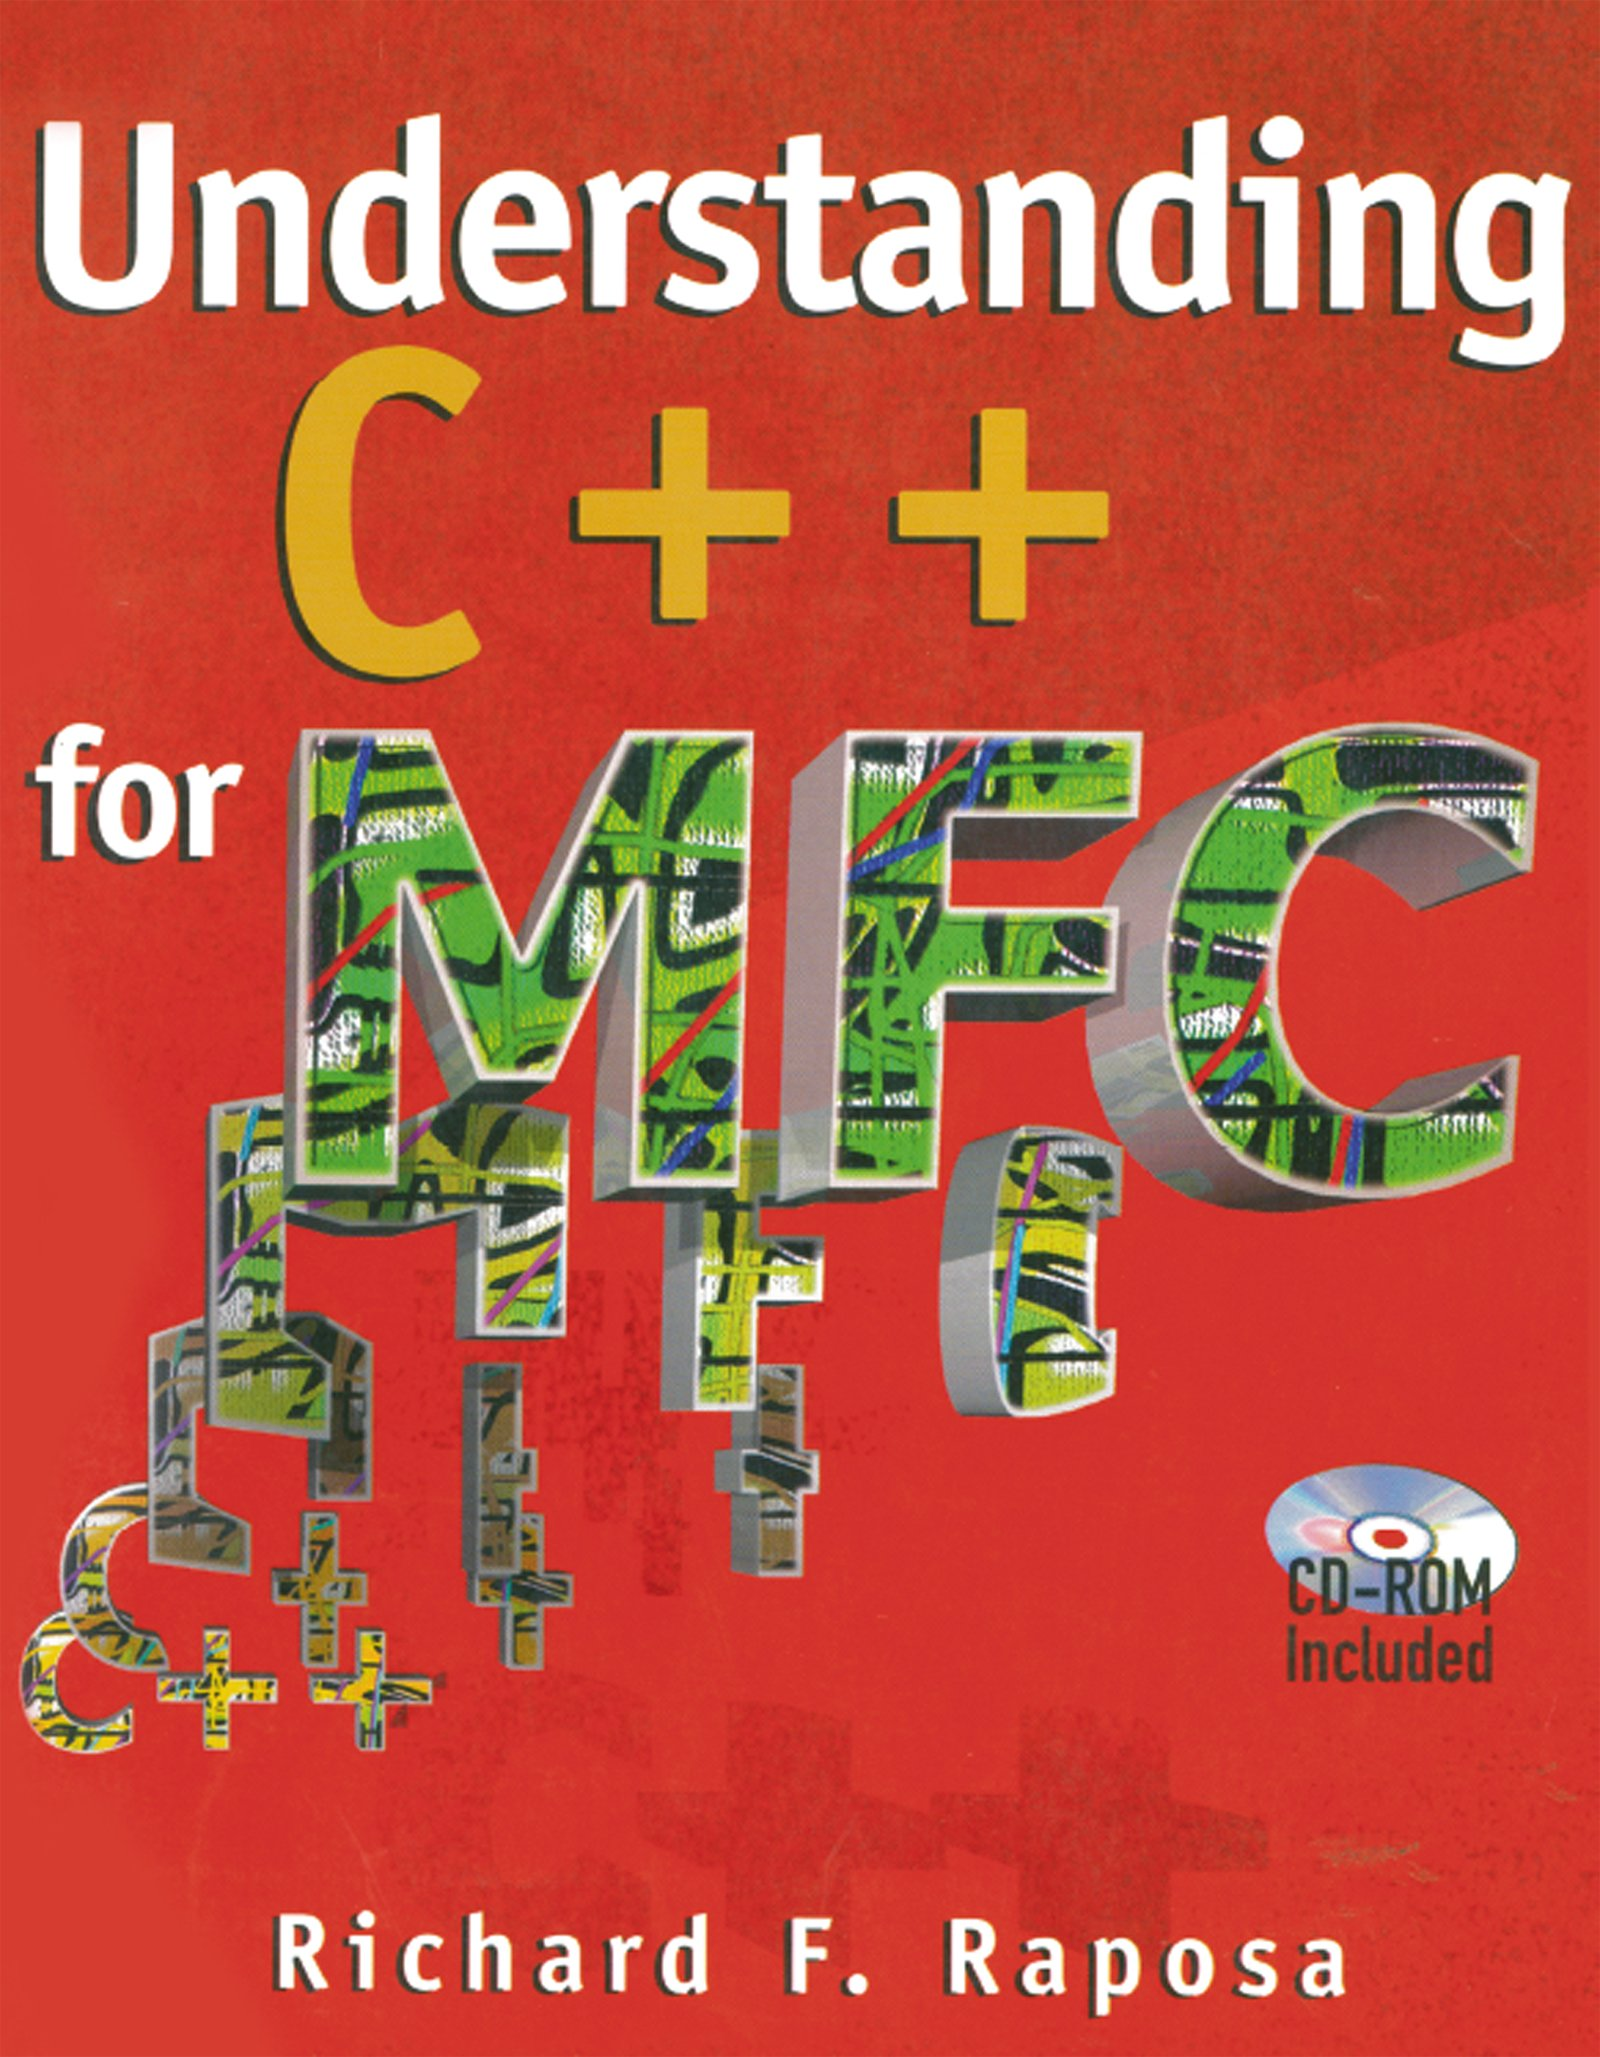 Image OfUnderstanding C++ For MFC (R & D Developer Series) (English Edition)